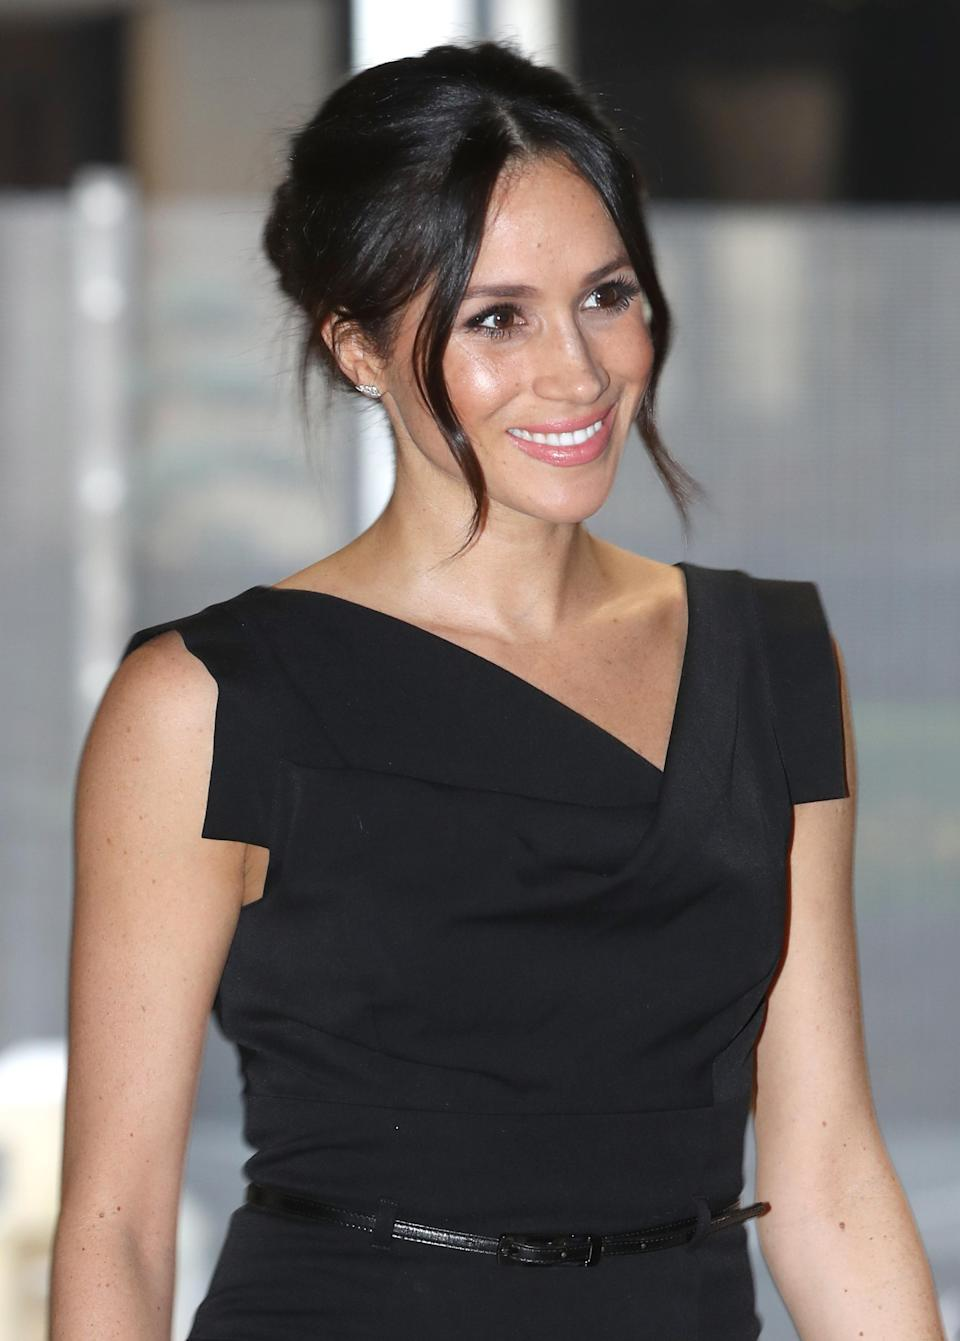 People think Meghan Markle is writing the captions on the Sussex's Instagram page. Photo: Getty Images